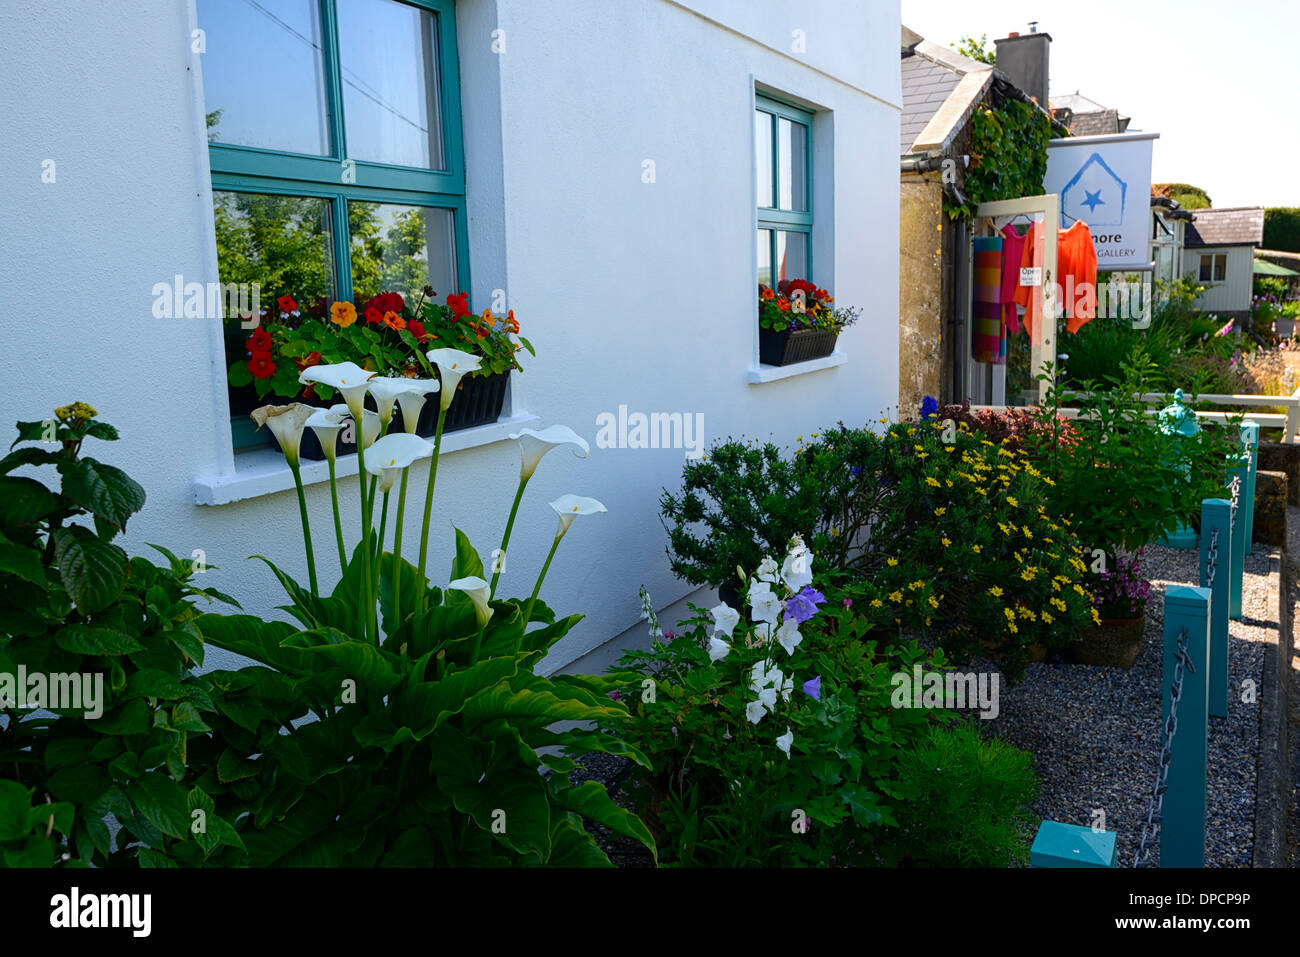 Neat Village Stock Photos & Neat Village Stock Images - Alamy